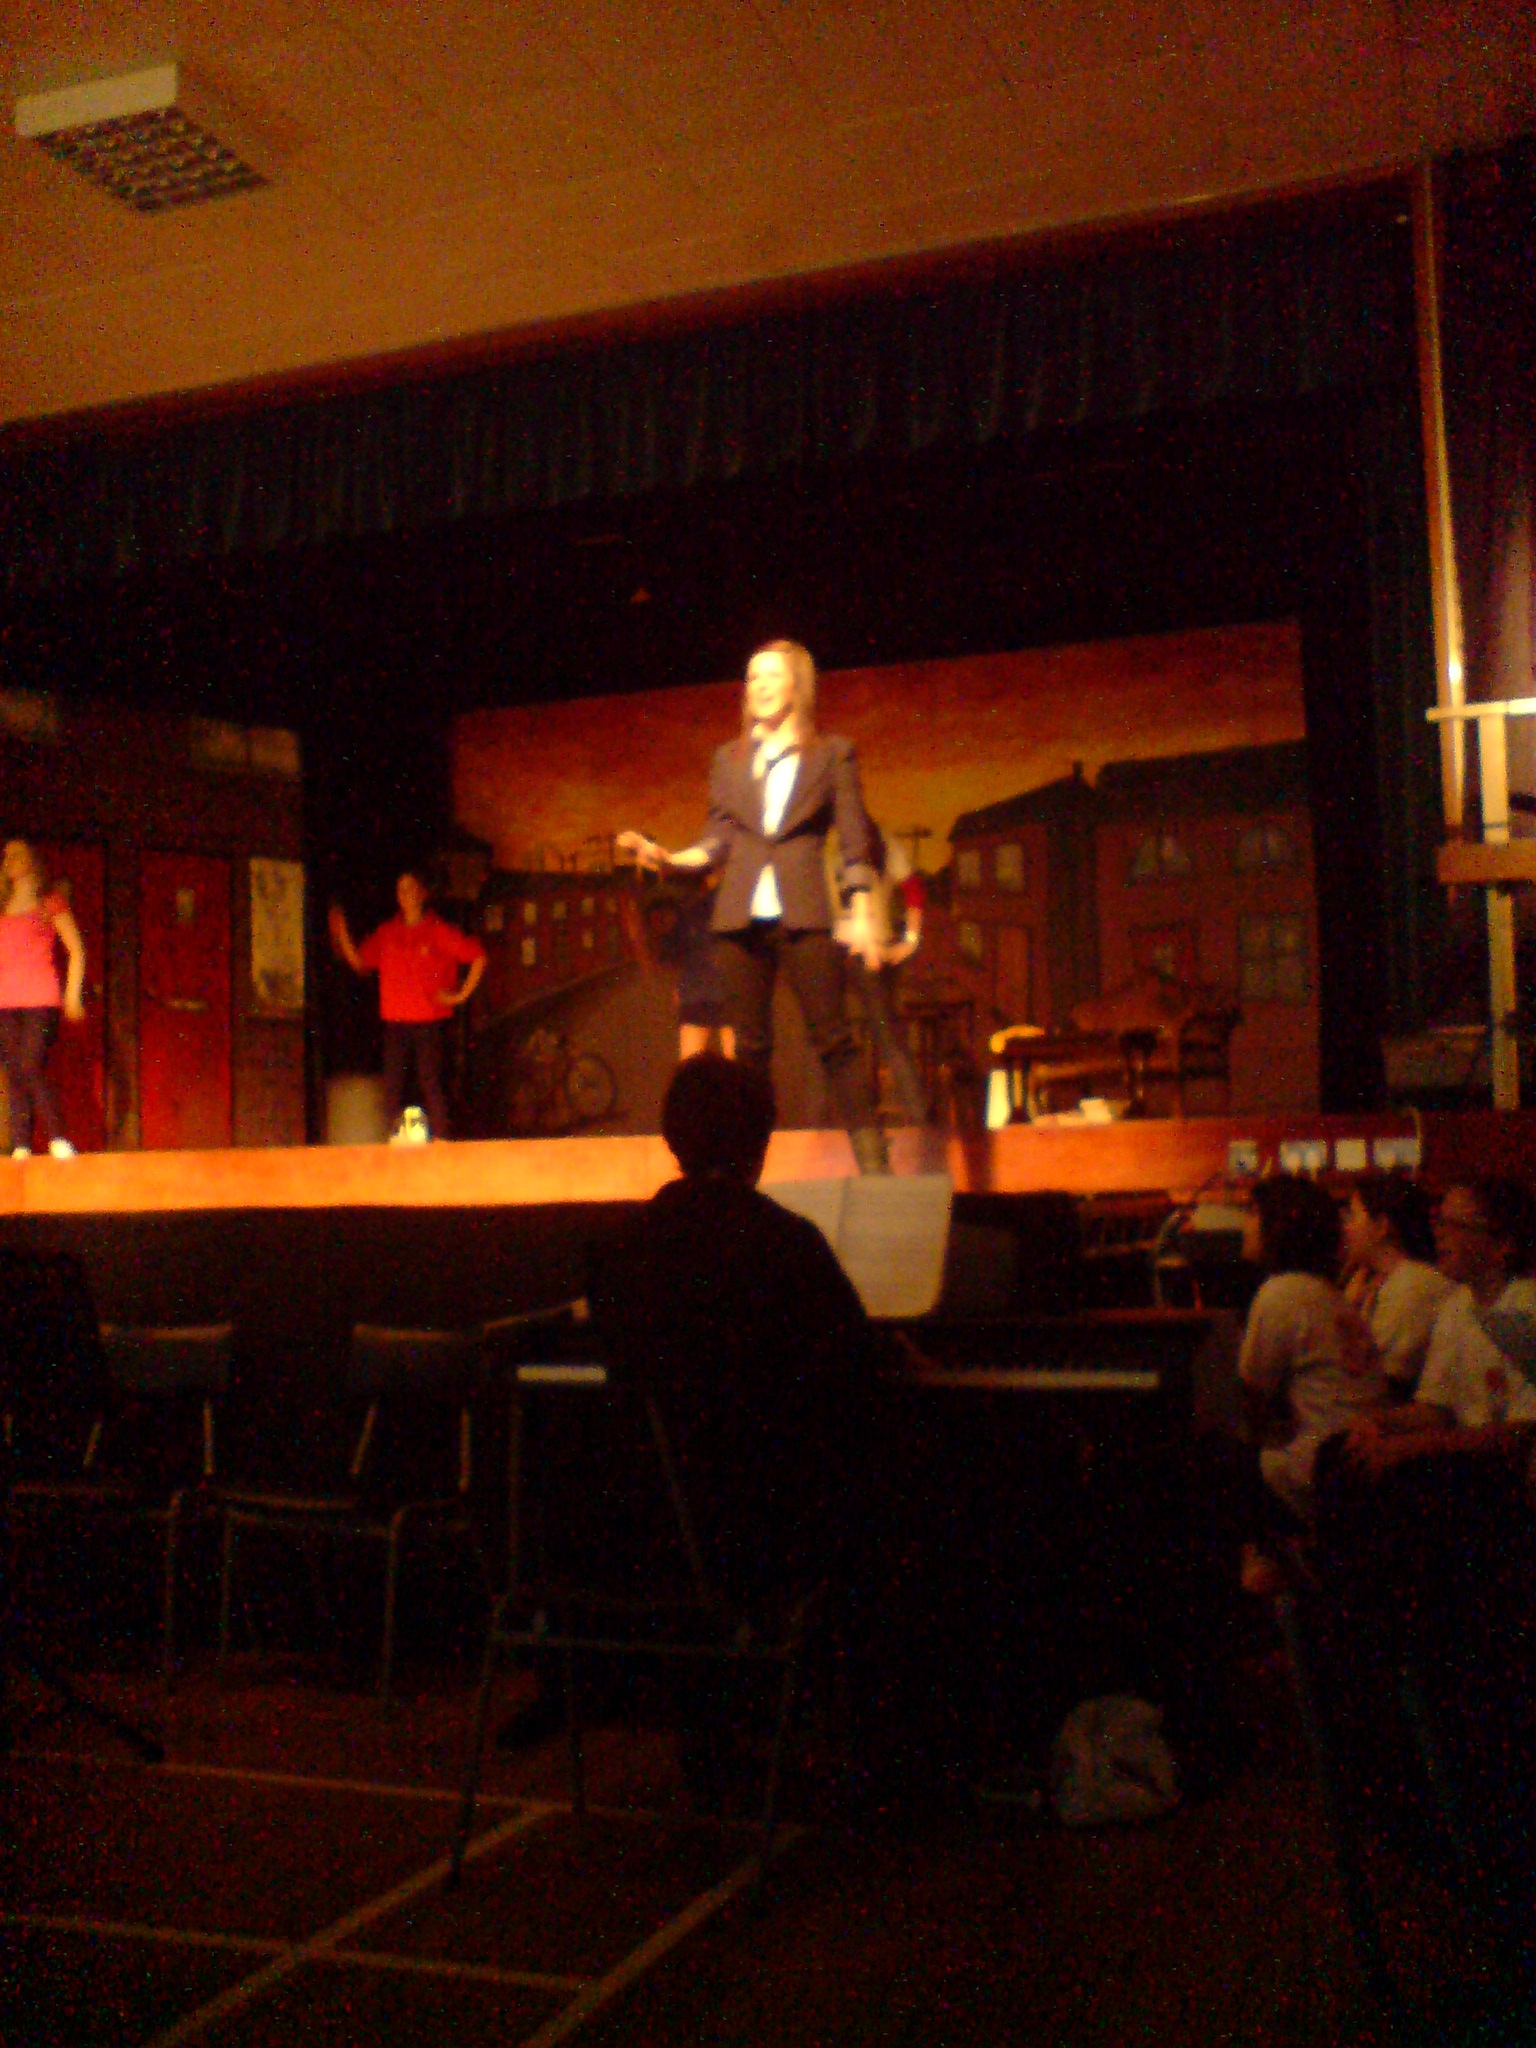 Jem singing the Madman song from Blood Brothers